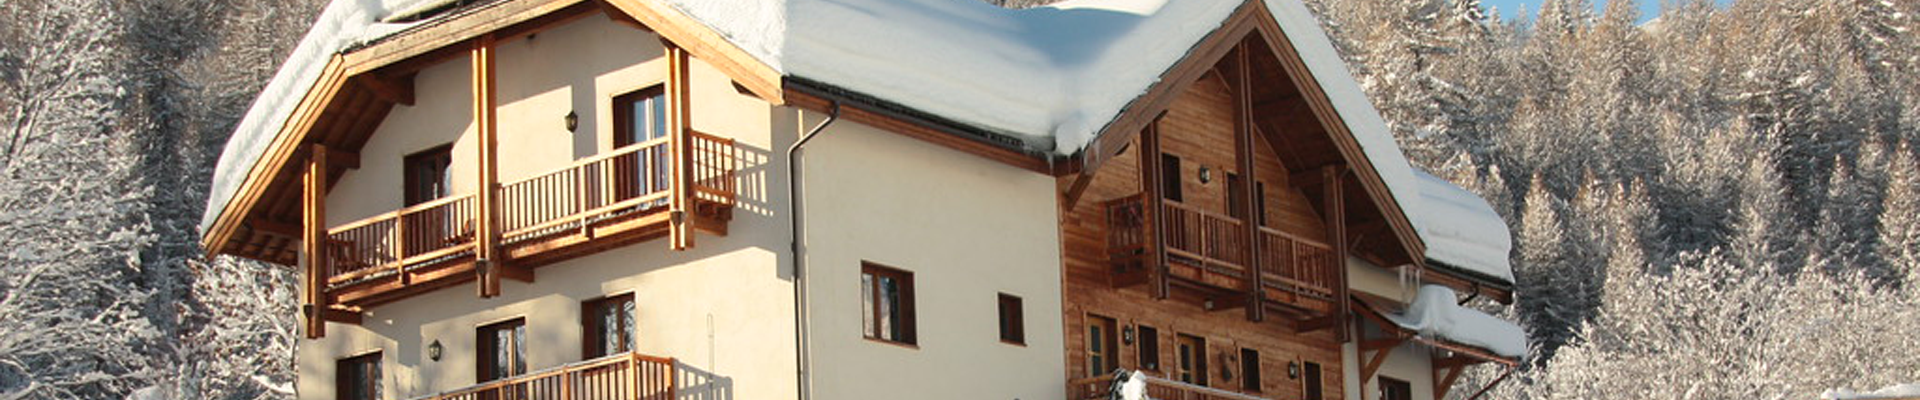 chalet-alpelune-winter